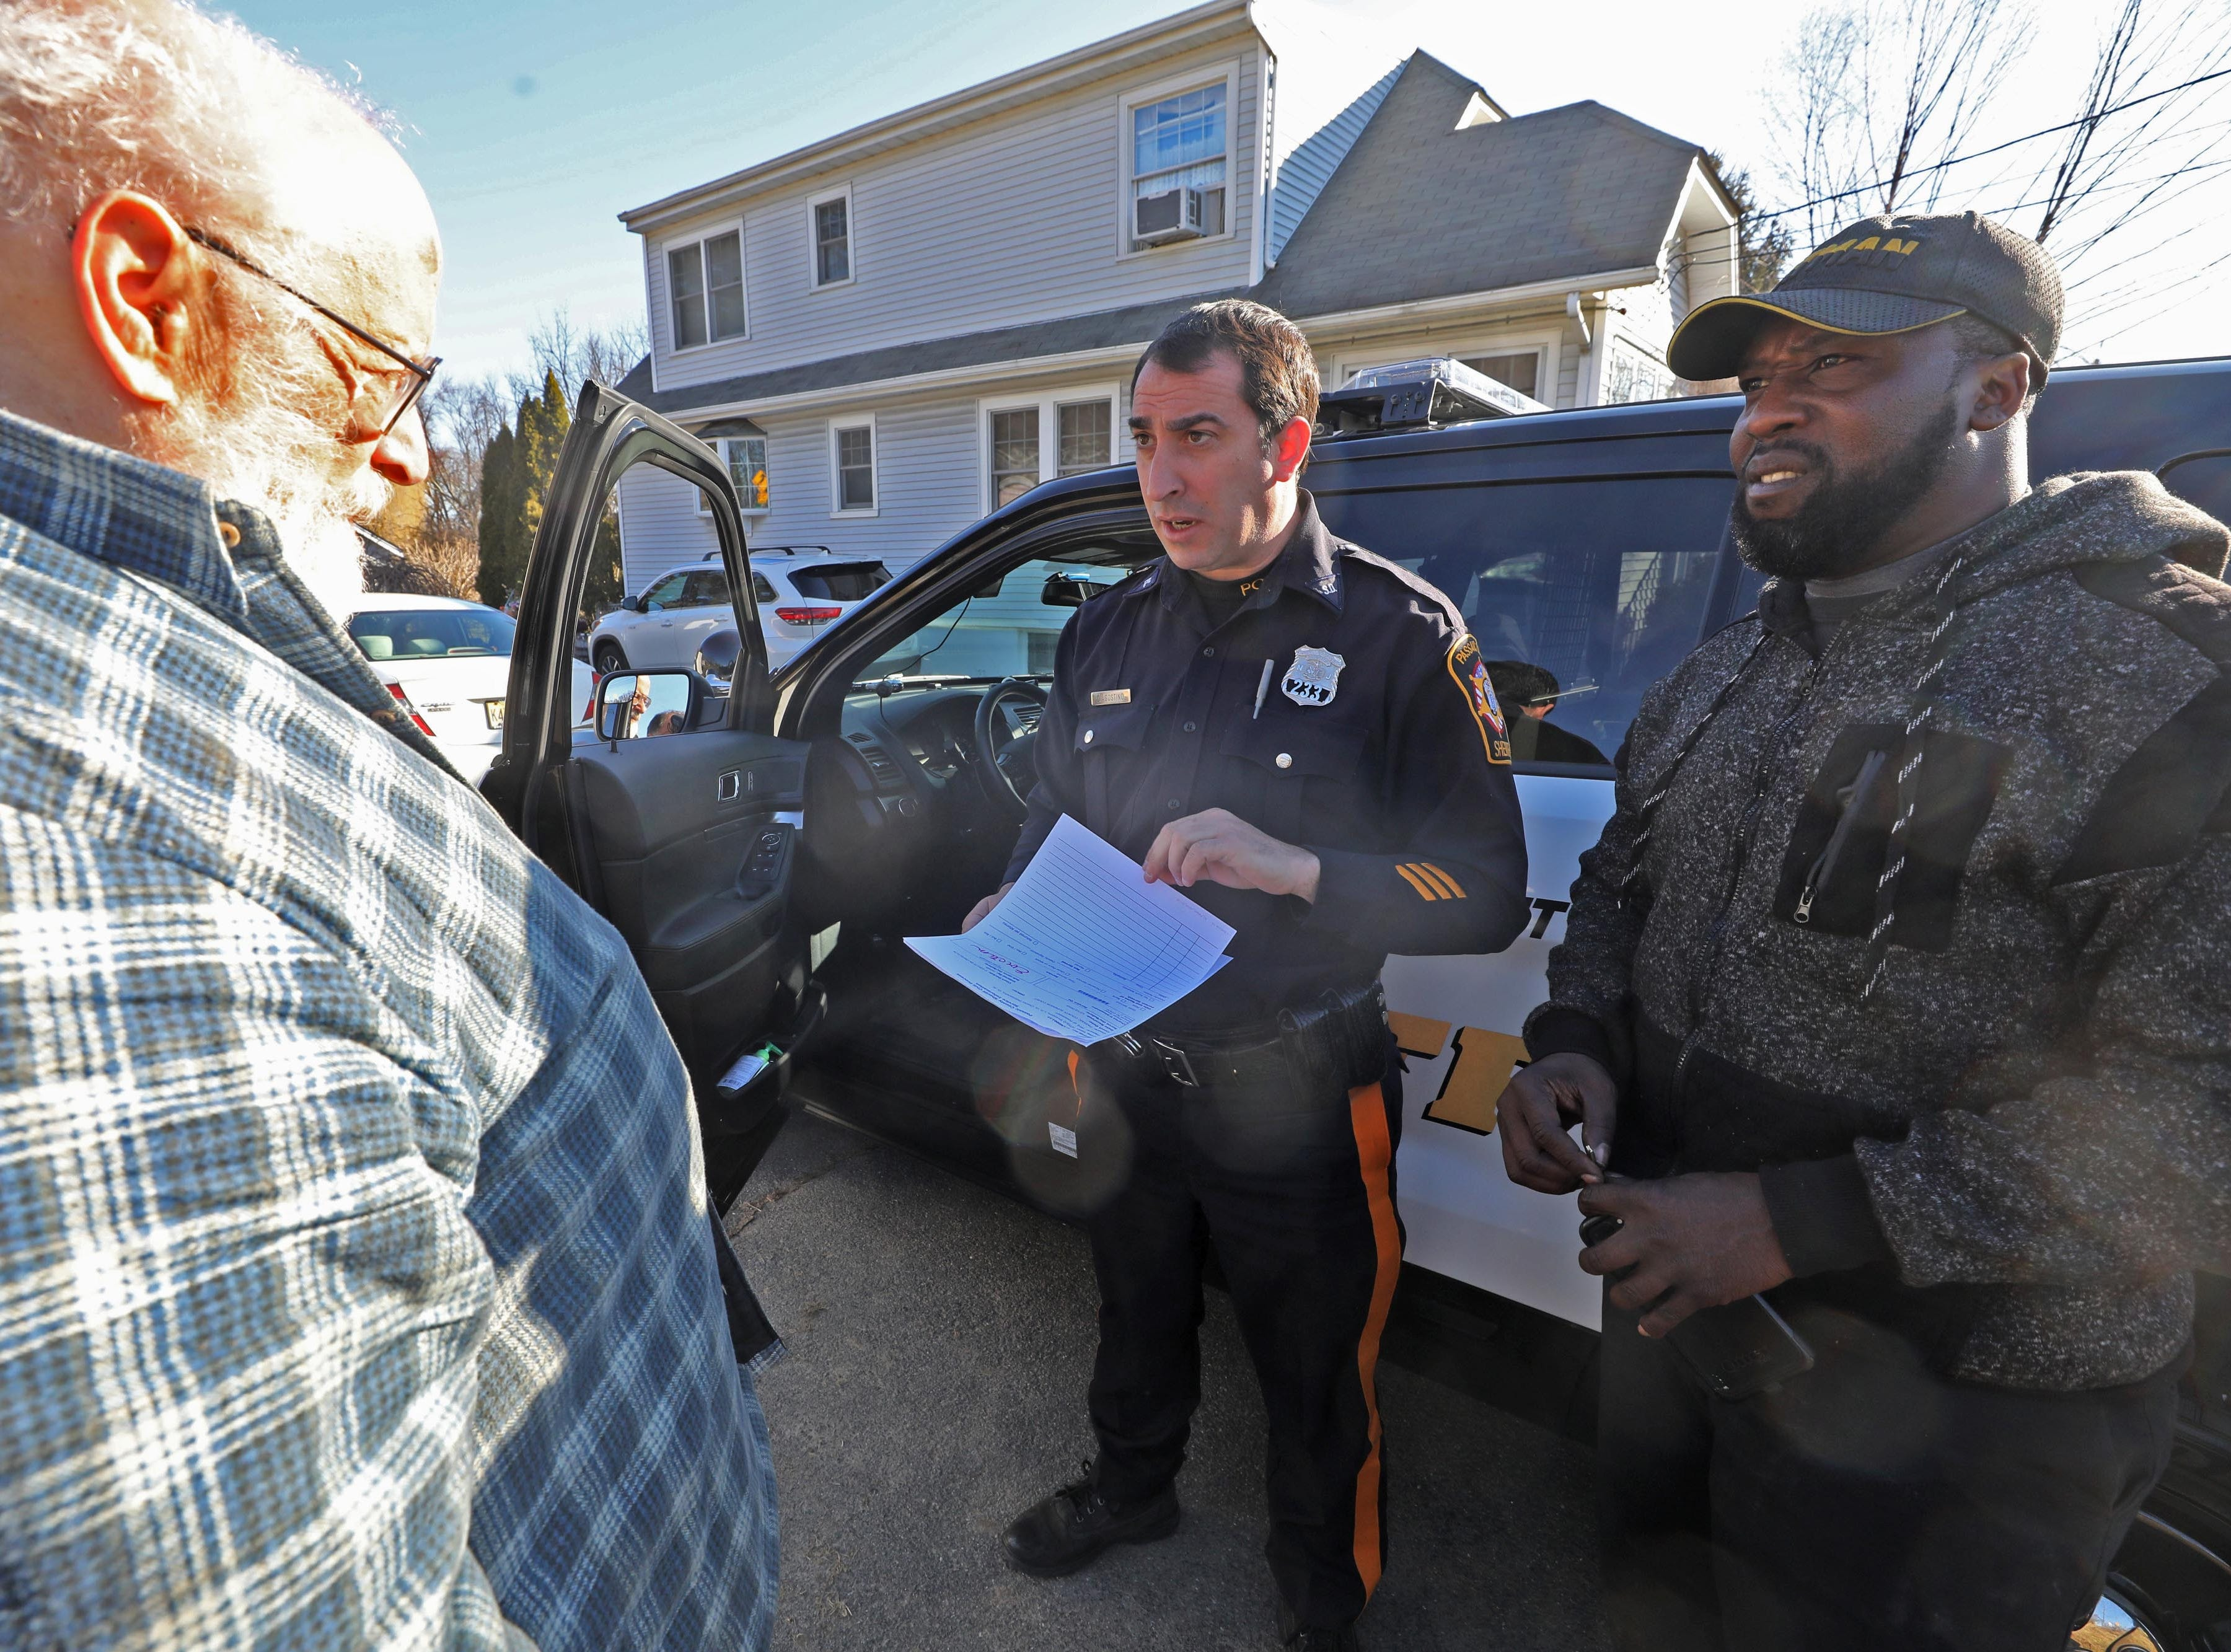 Charles D'Alessandro talks with Passaic County Sheriff's Officer Nick D'Agostino and a worker with the moving company as D'Alessandro is being evicted from his home on March 19, 2019, after failing to pay the mortgage for the past 10 years.